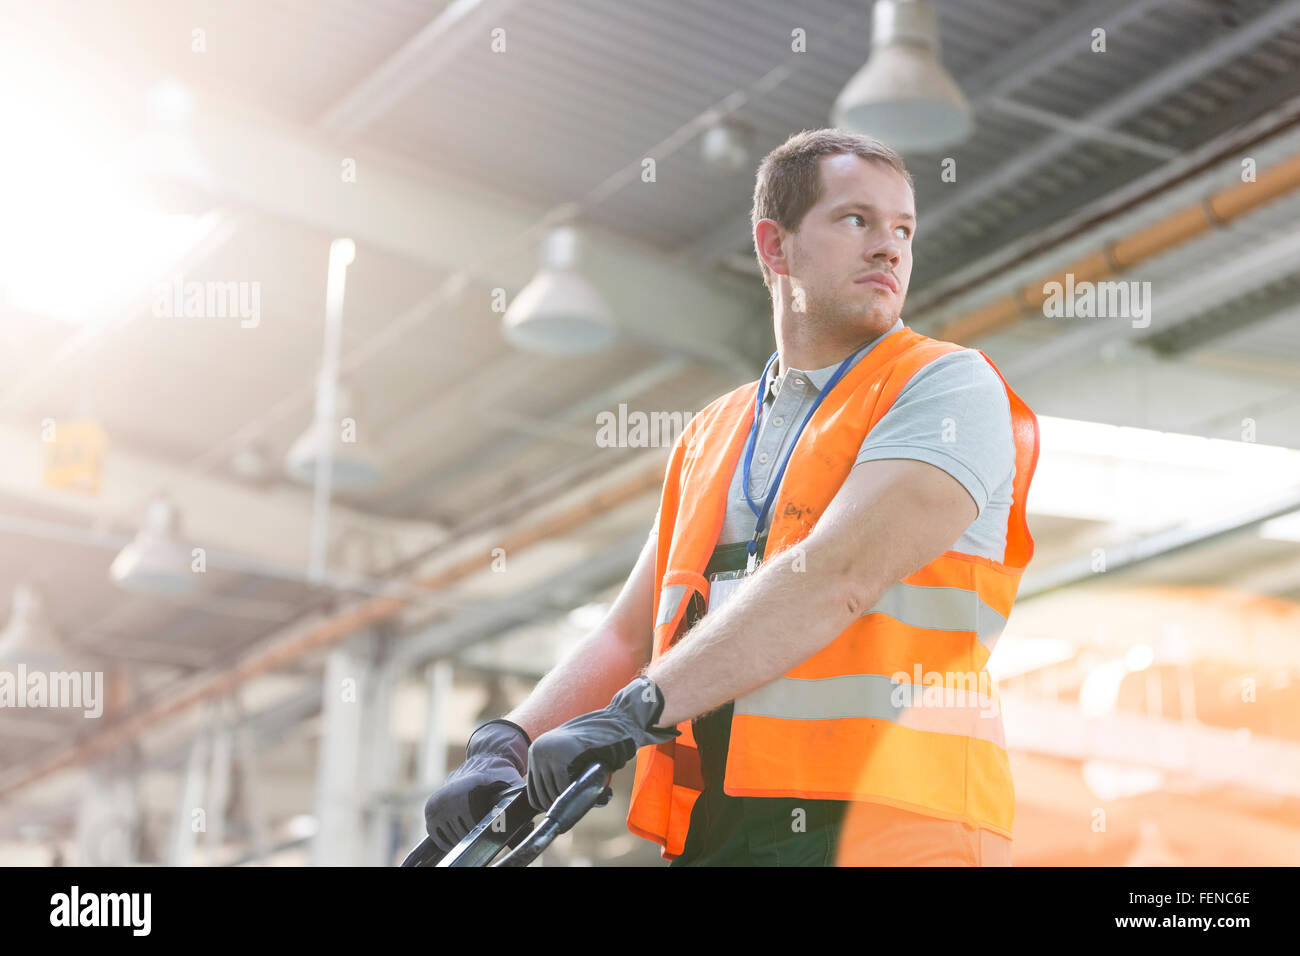 Worker in protective workwear pulling pallet truck in factory - Stock Image